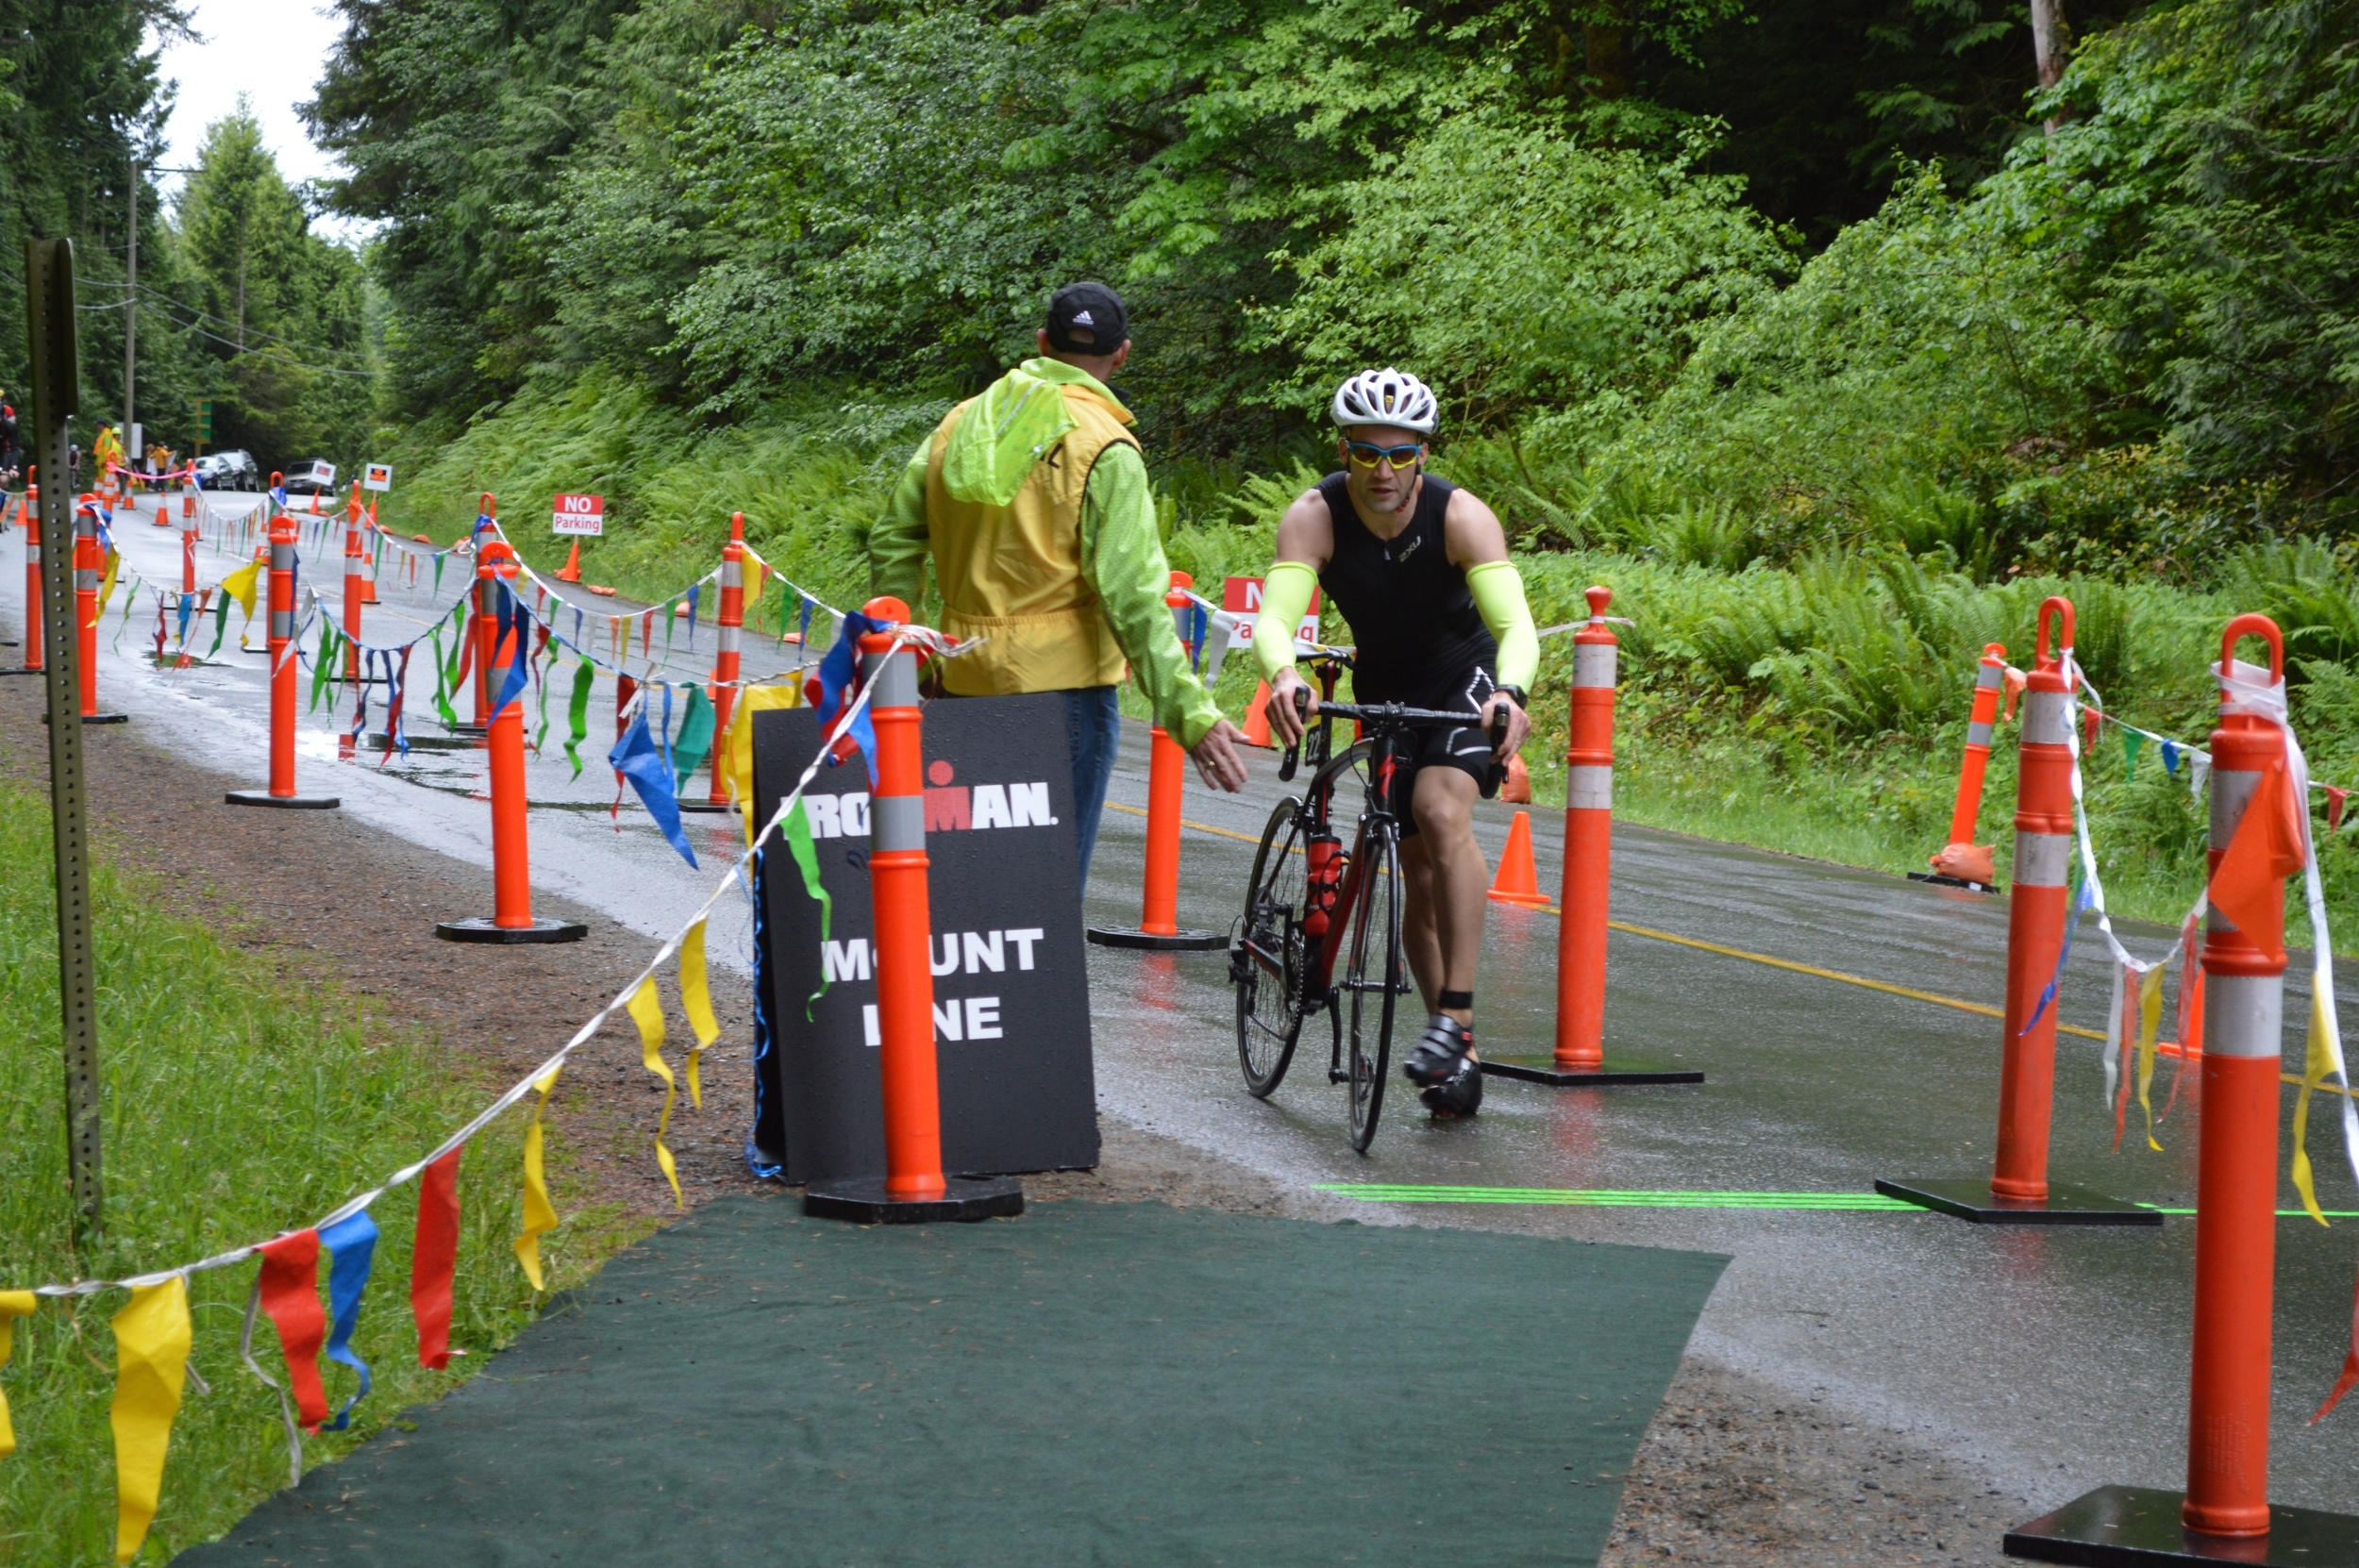 Dismount before the line!